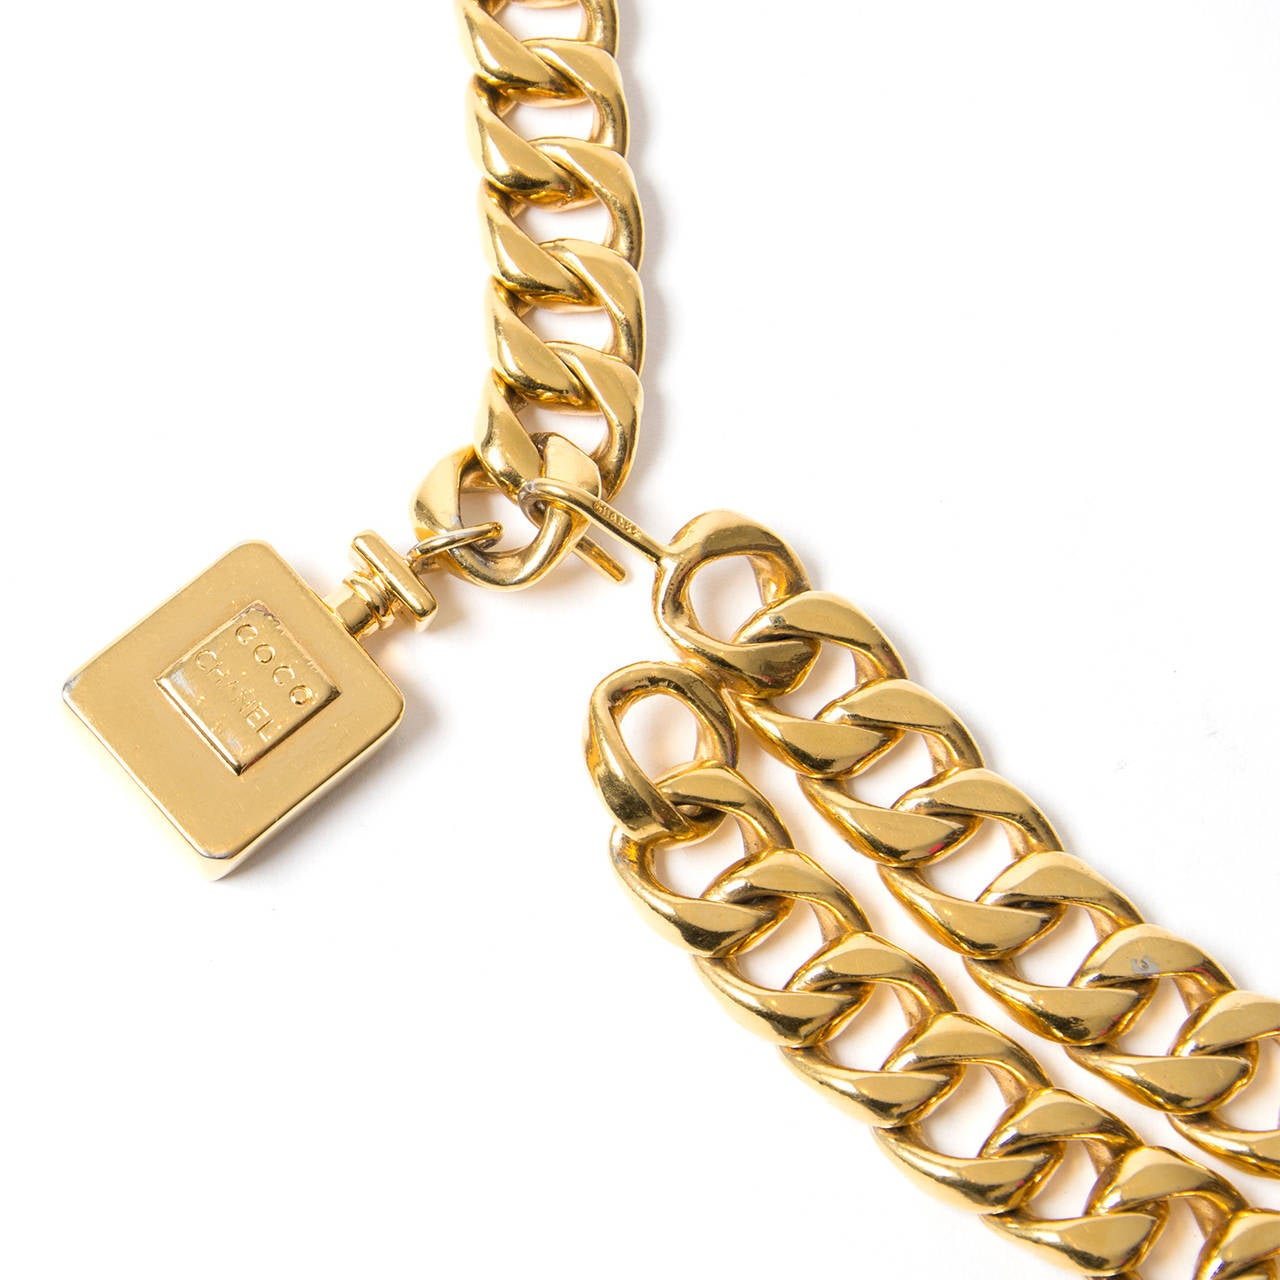 Chanel Gold Parfum Chain Belt 2